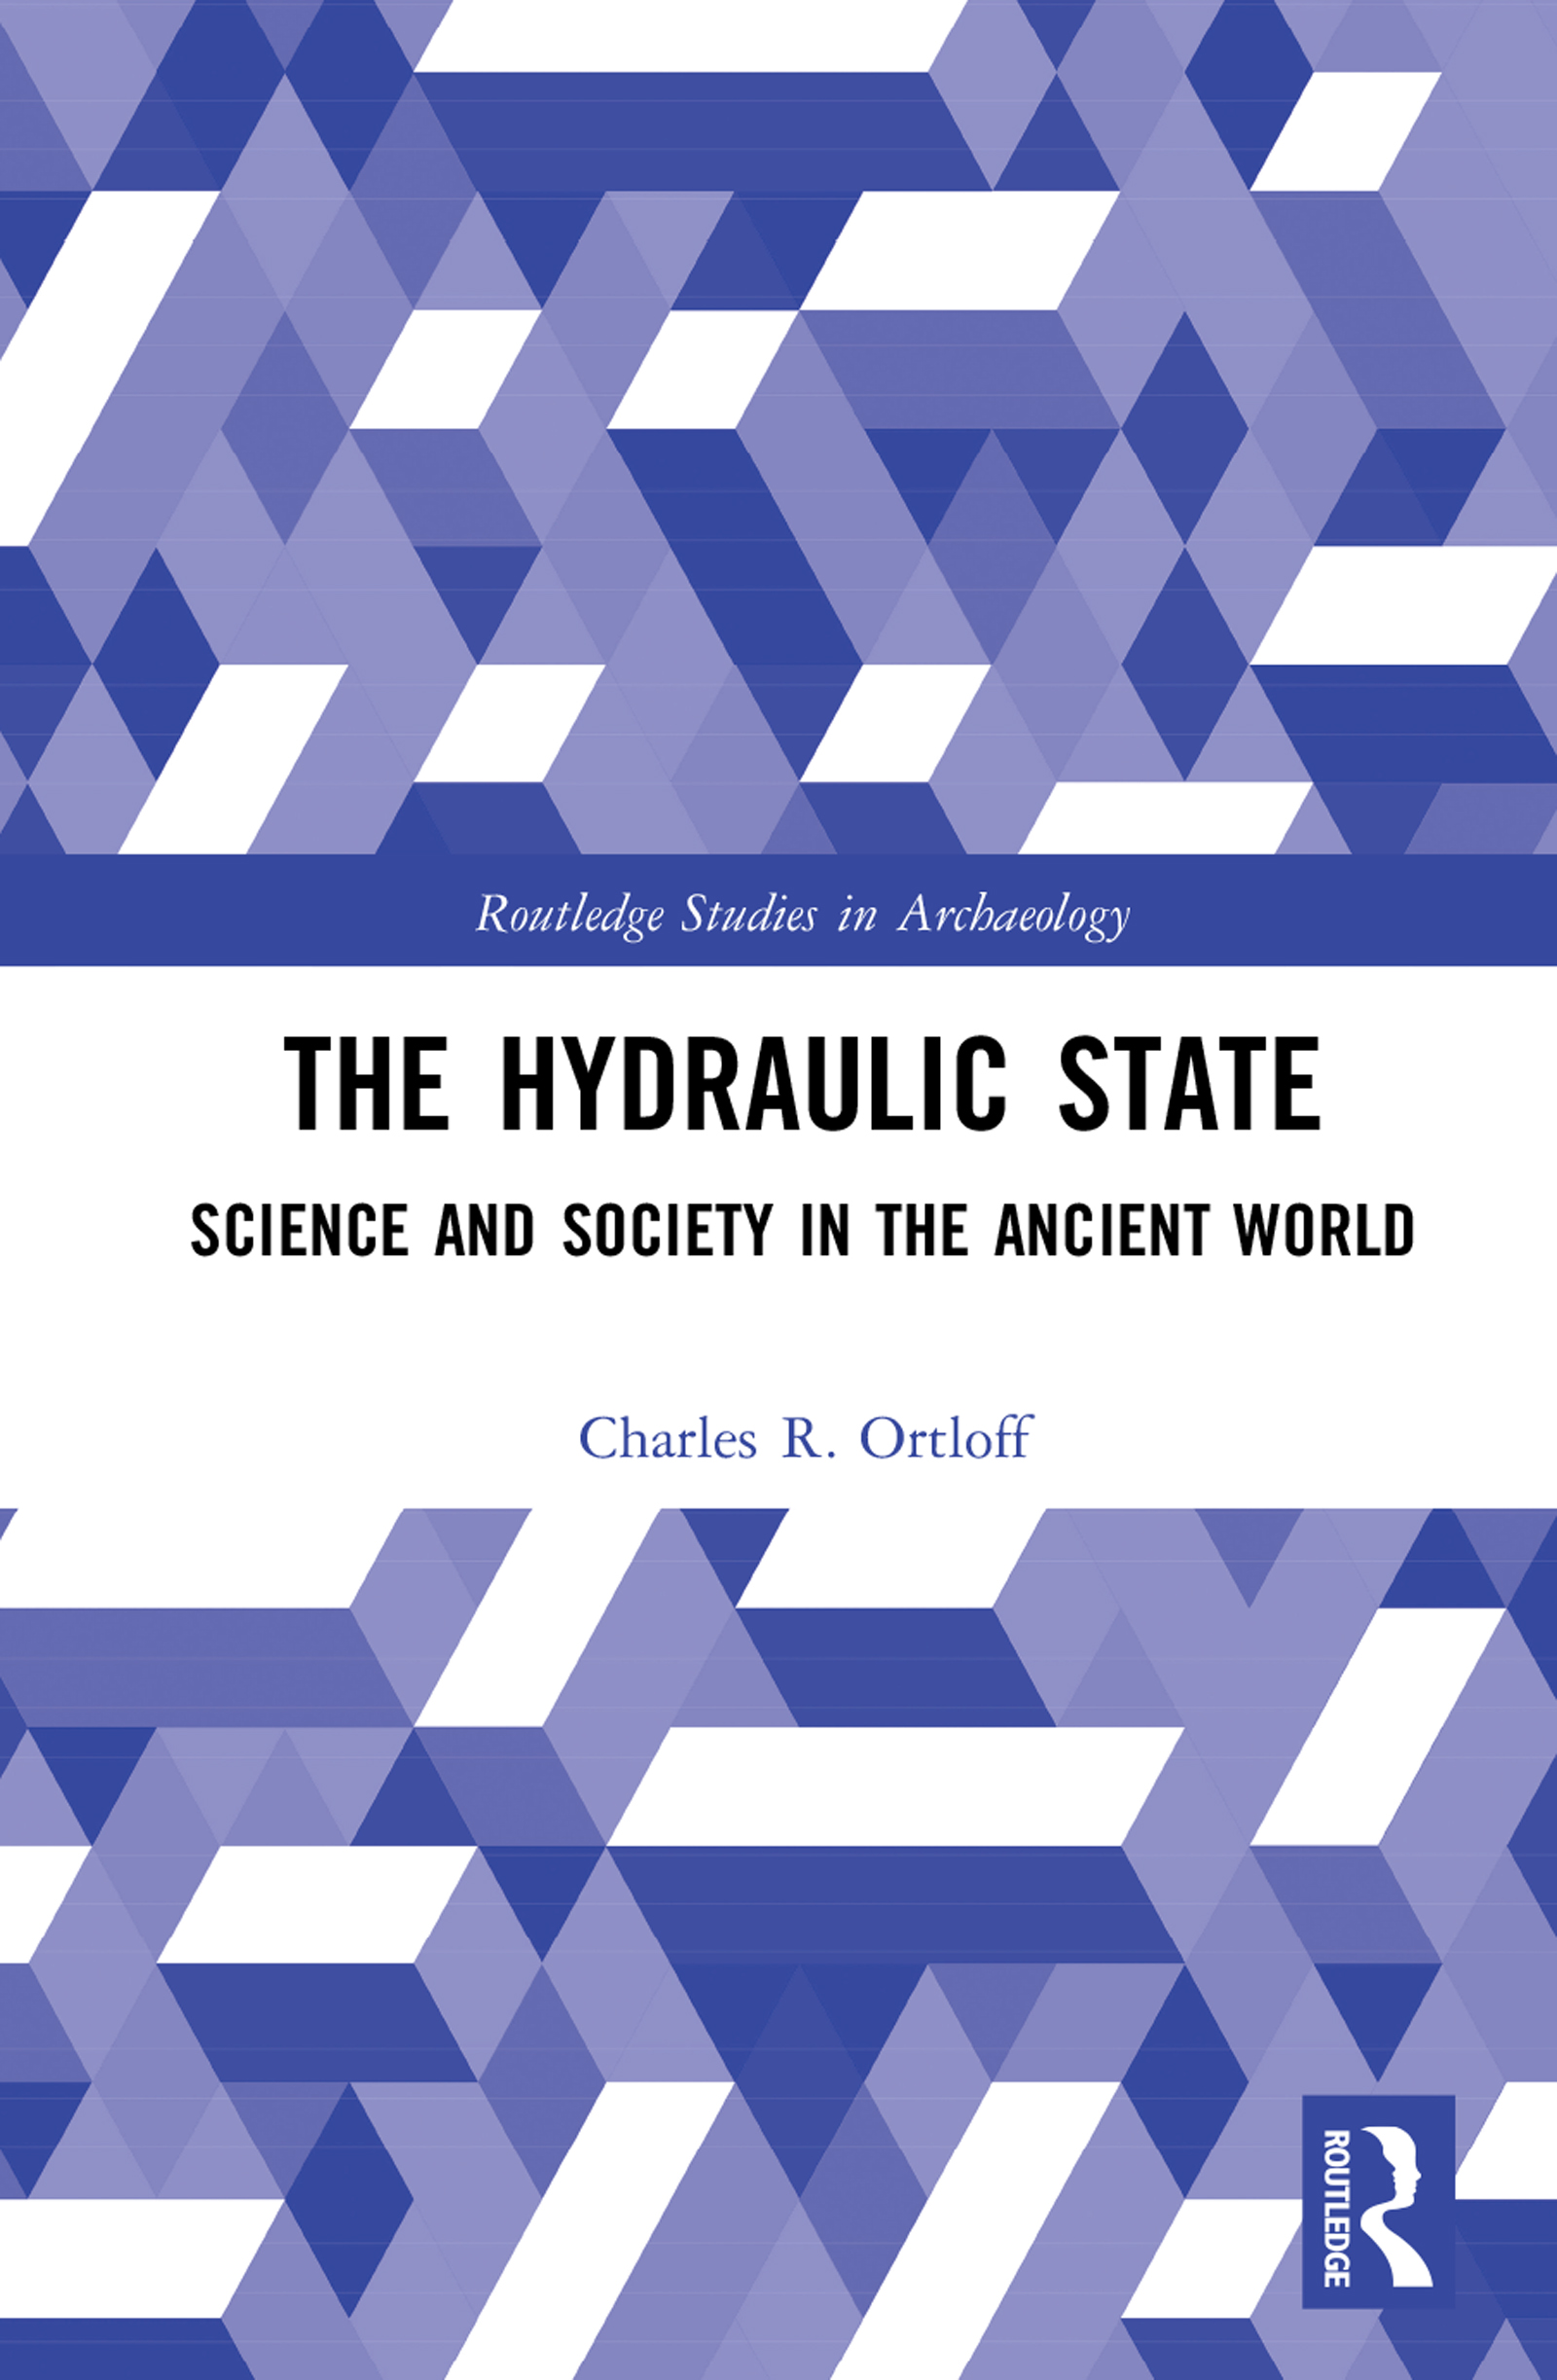 The Hydraulic State